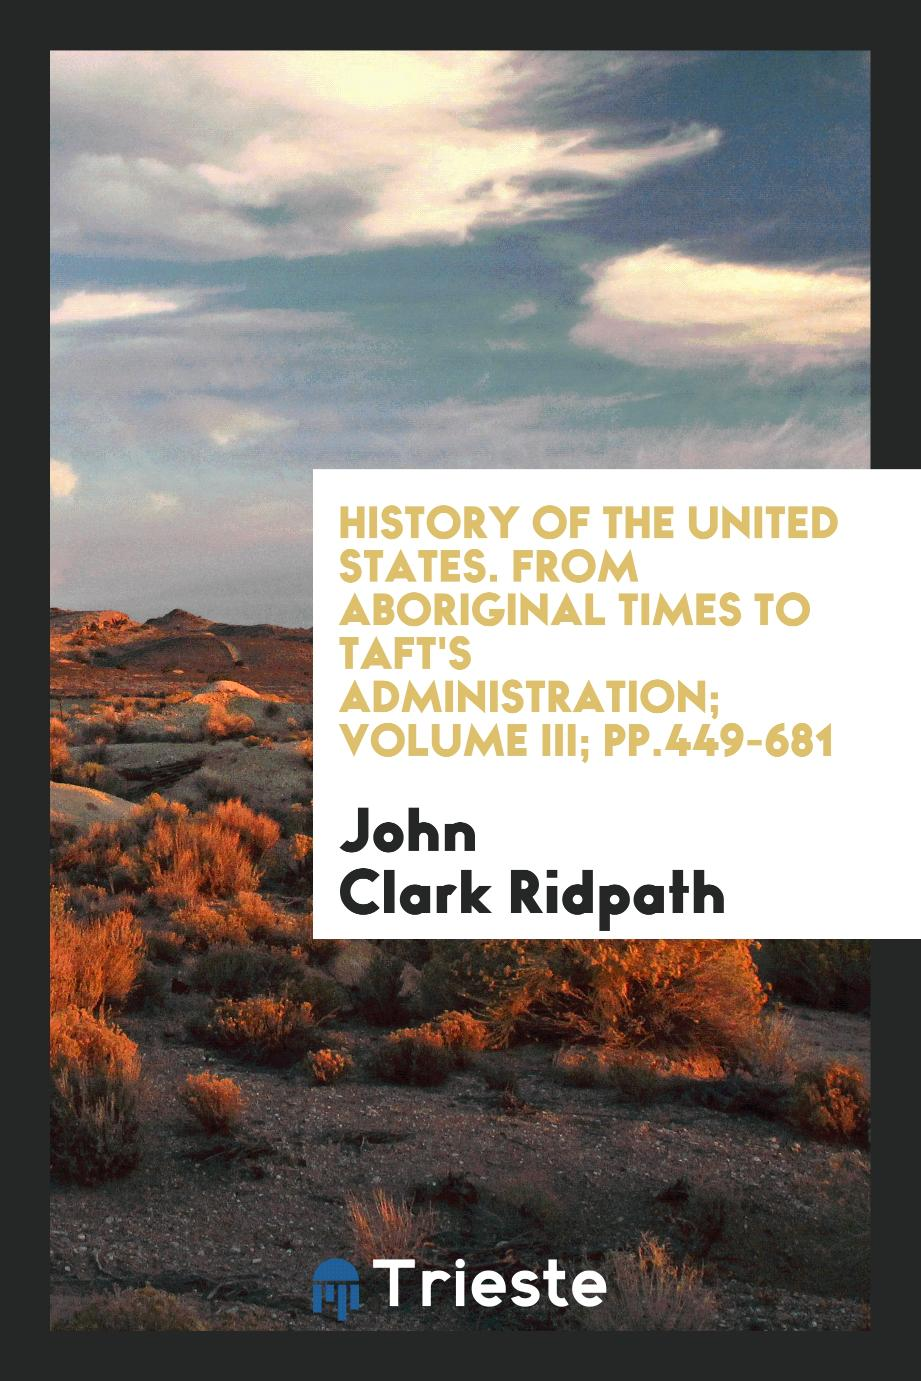 History of the United States. From aboriginal times to Taft's administration; Volume III; pp.449-681